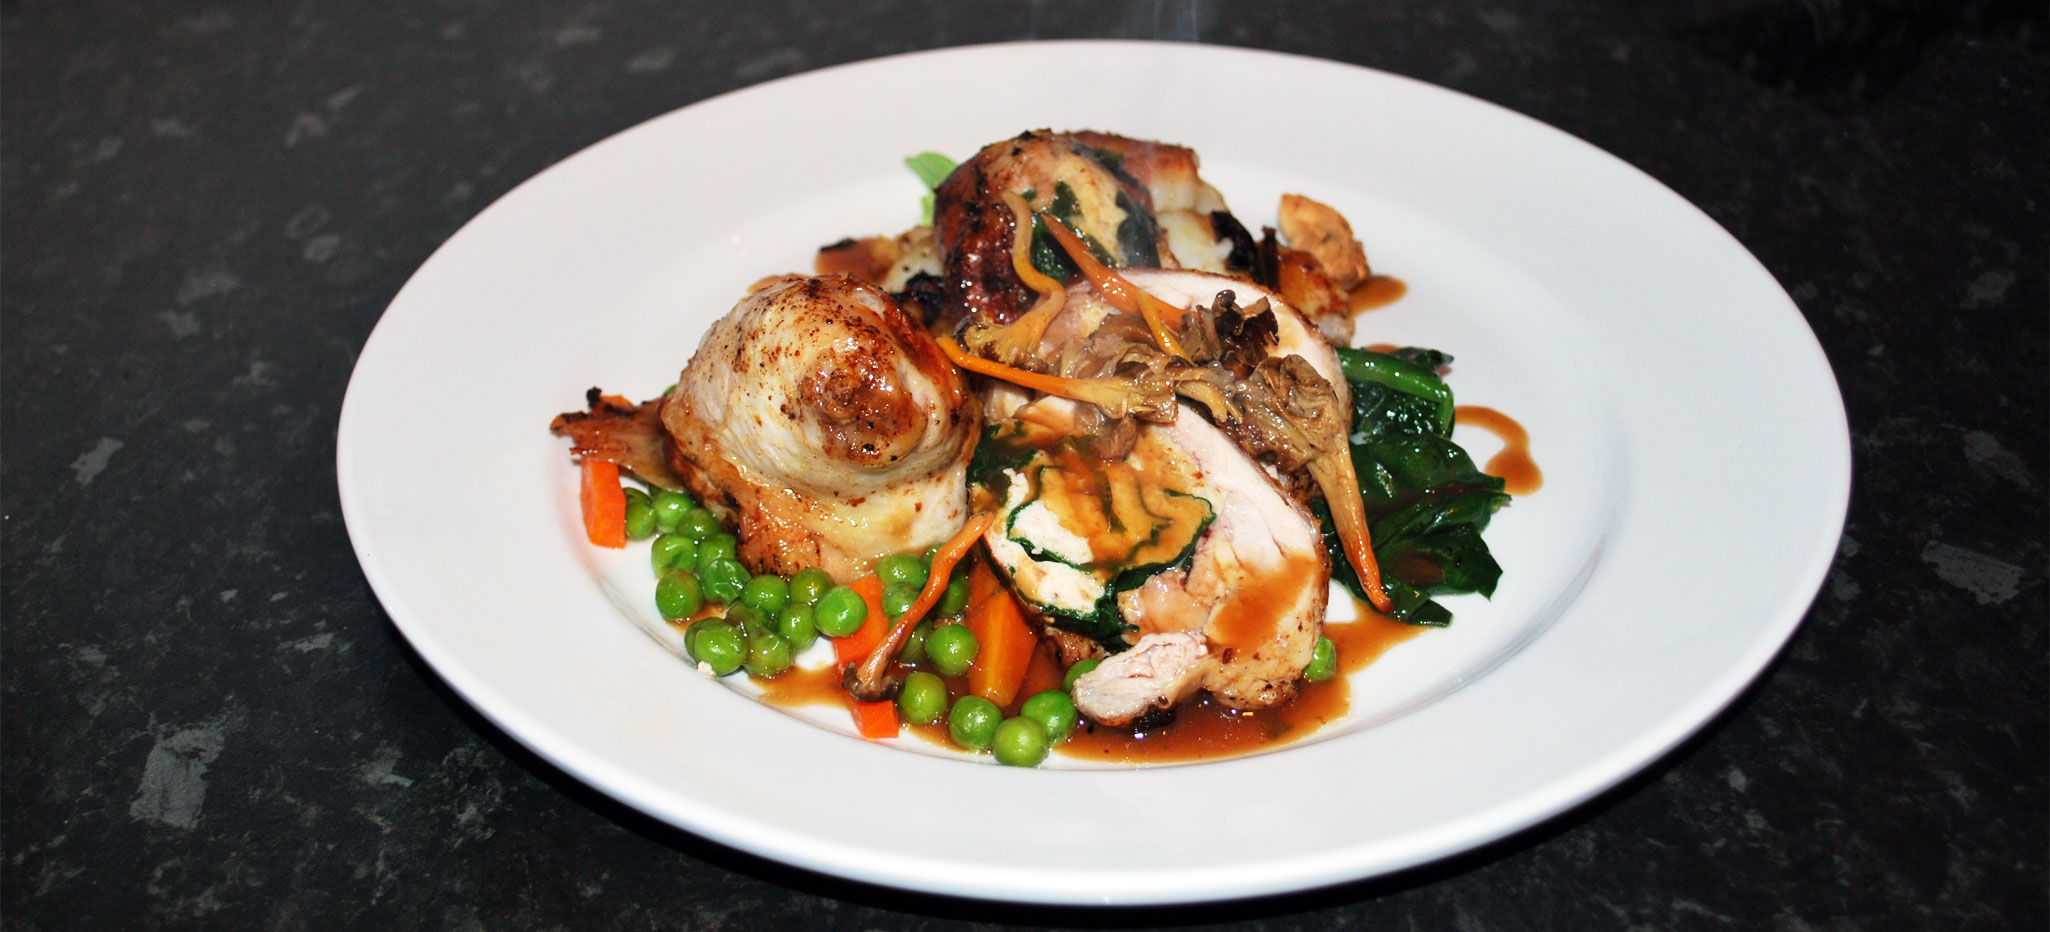 Chicken Leg filled with Wild Mushroom Stuffing